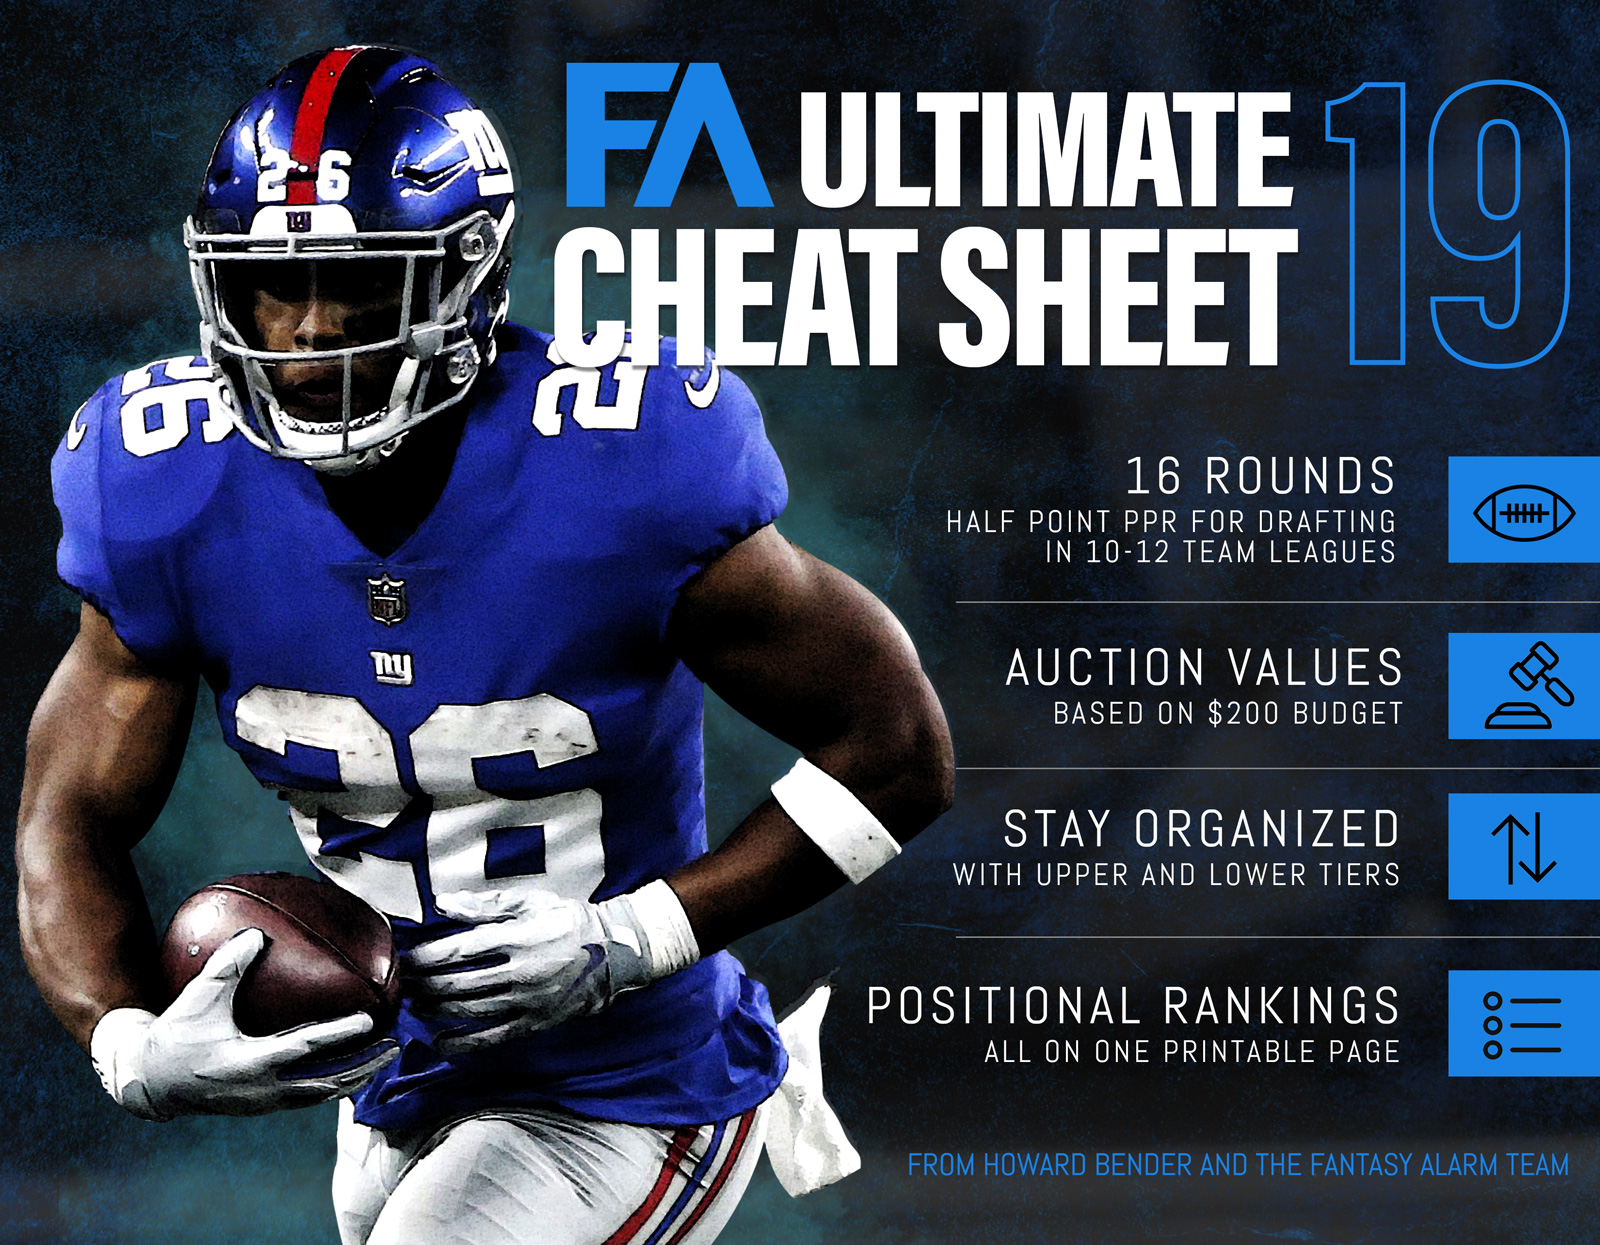 photograph about Free Printable Fantasy Football Cheat Sheets identified as 2019 Howard Bender NFL Top Cheat Sheet Myth Alarm